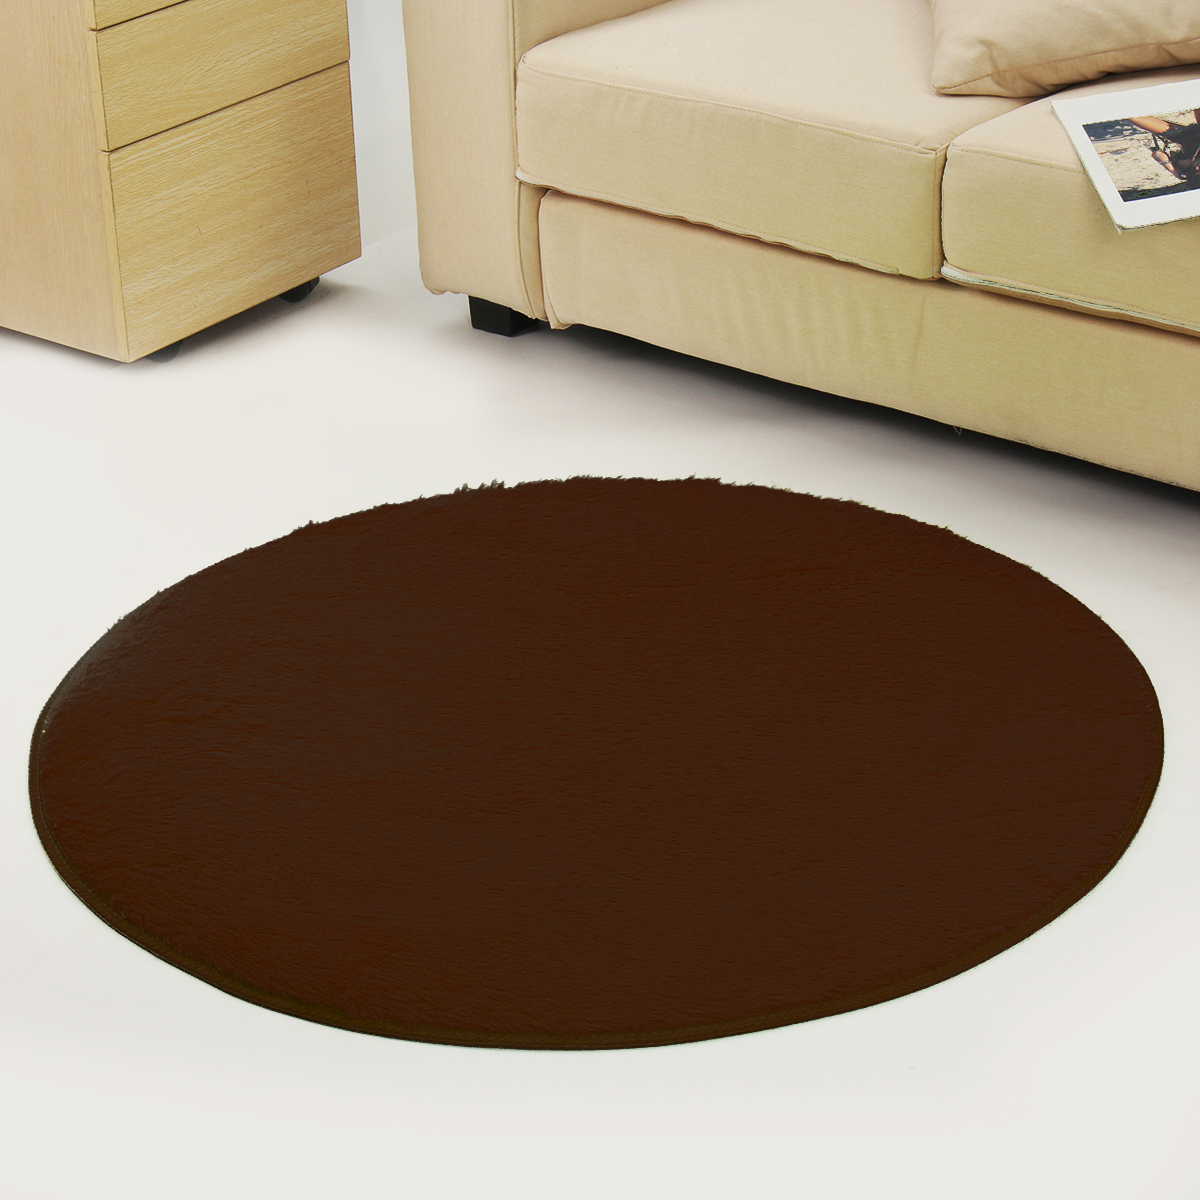 Round Anti Skid Fluffy Shaggy Area Rug Dining Room Home Table Carpet Floor Mat